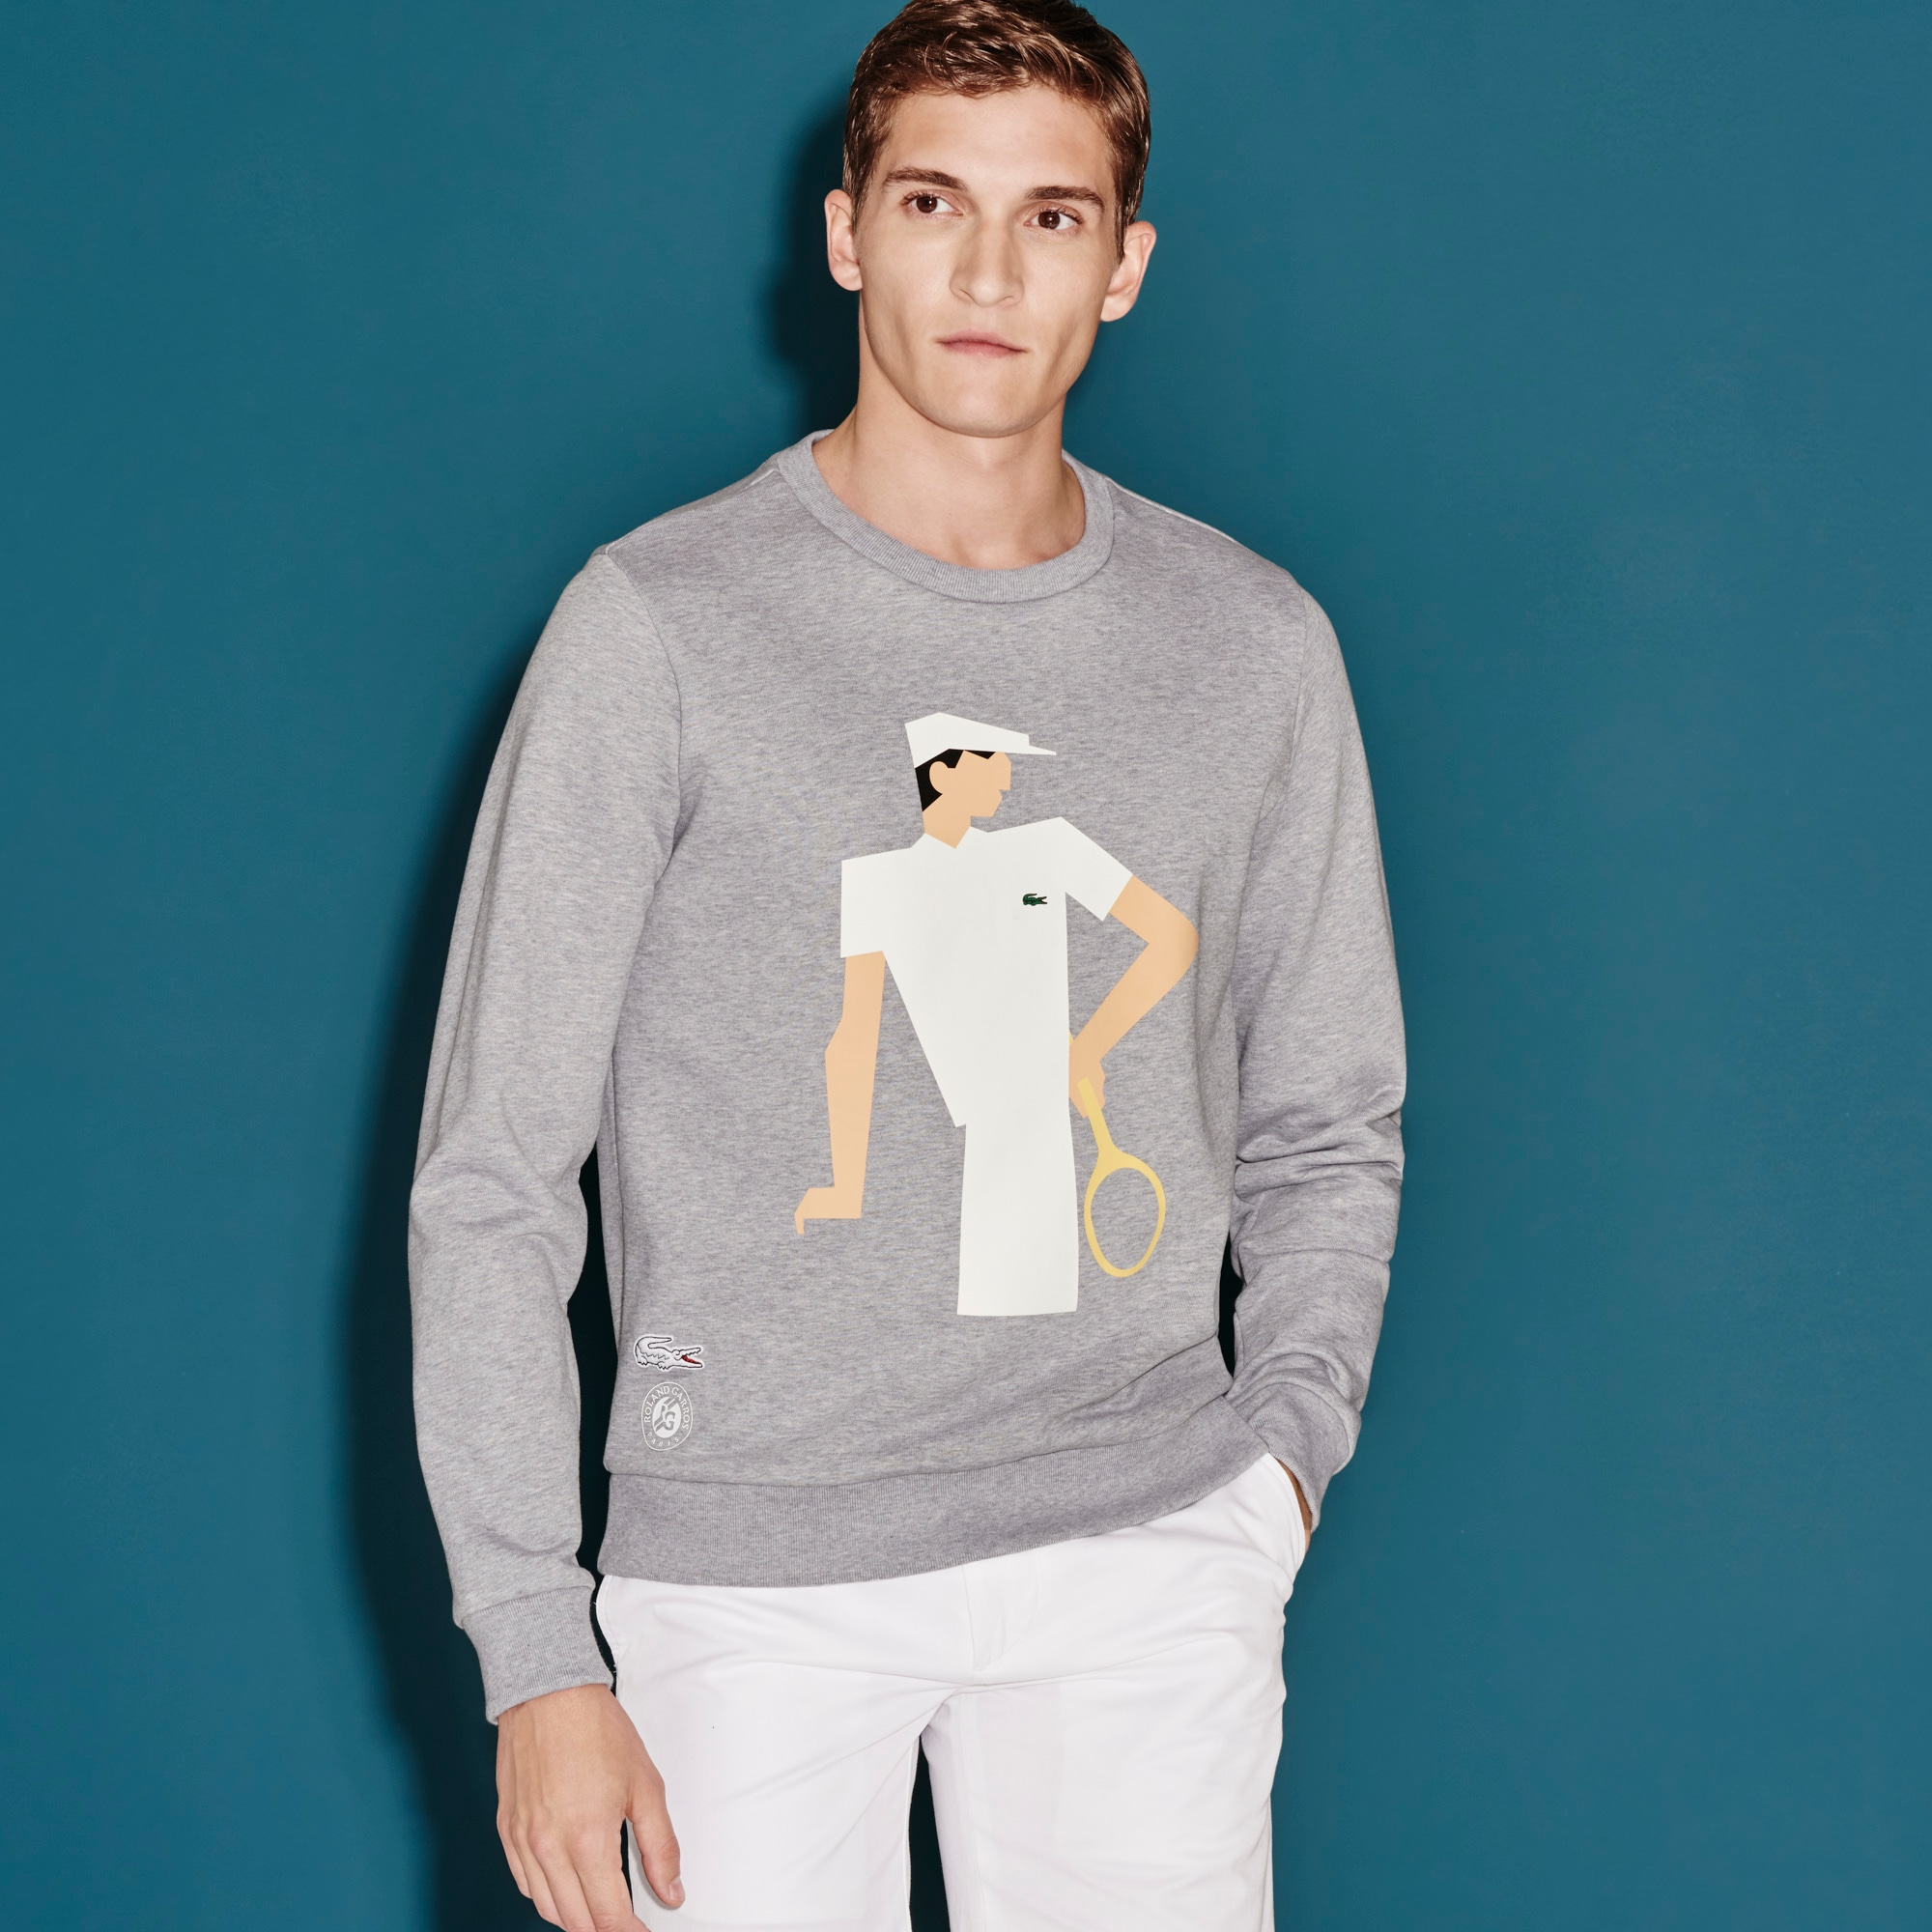 Men's SPORT French Open Player Sweatshirt